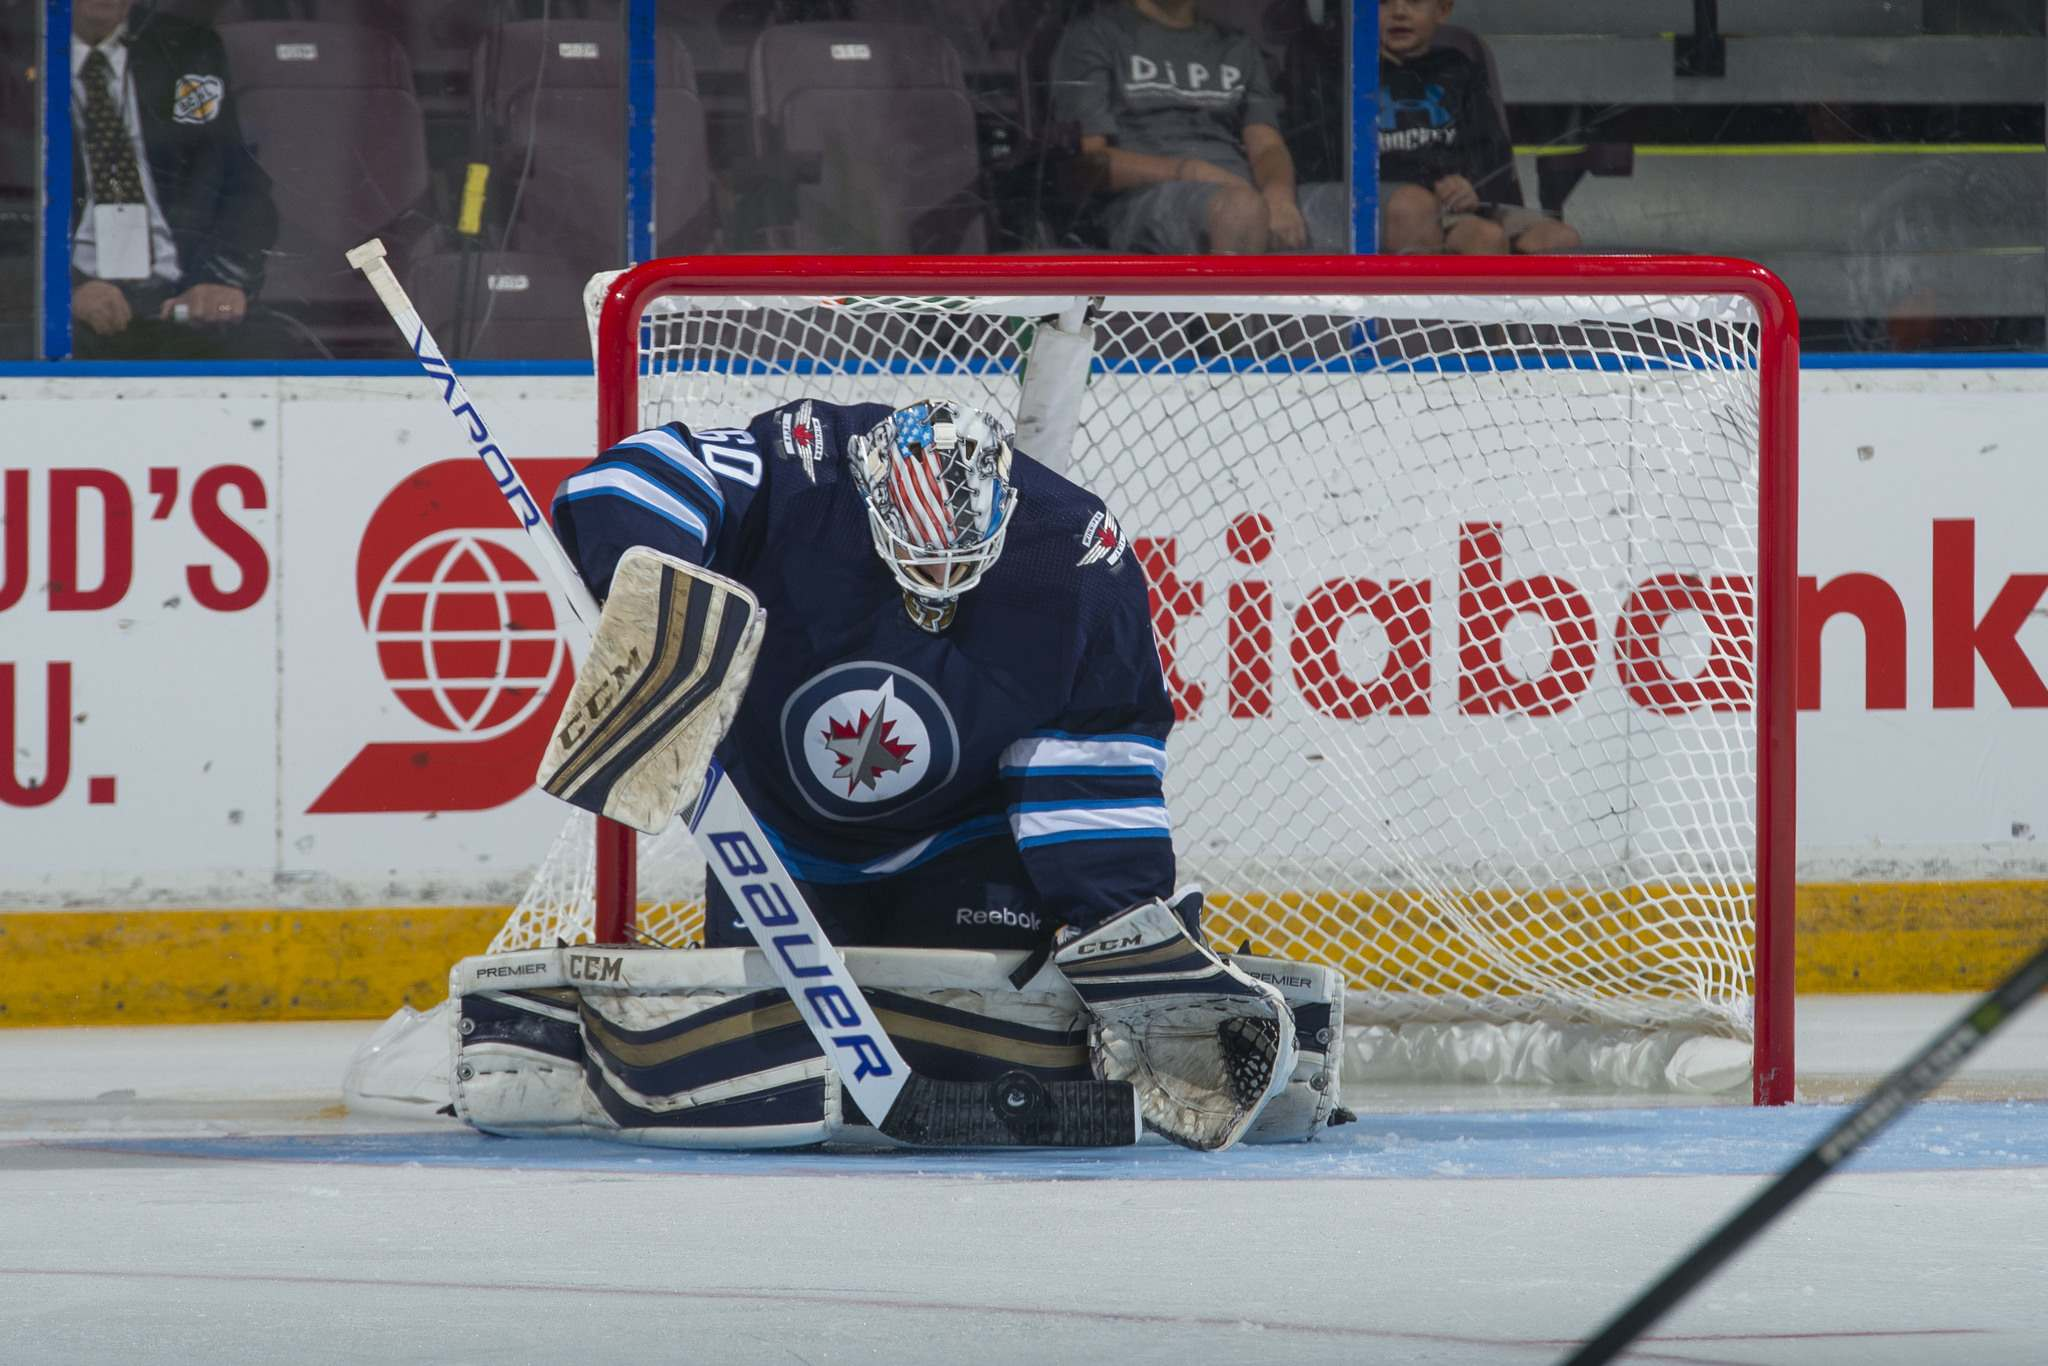 Marissa Baecker/Shoot the Breeze</p><p>Mikhail Berdin #60 of the Winnipeg Jets makes a stick save against the Vancouver Canucks on September 8, 2017 at the South Okanagan Event Centre in Penticton.</p>